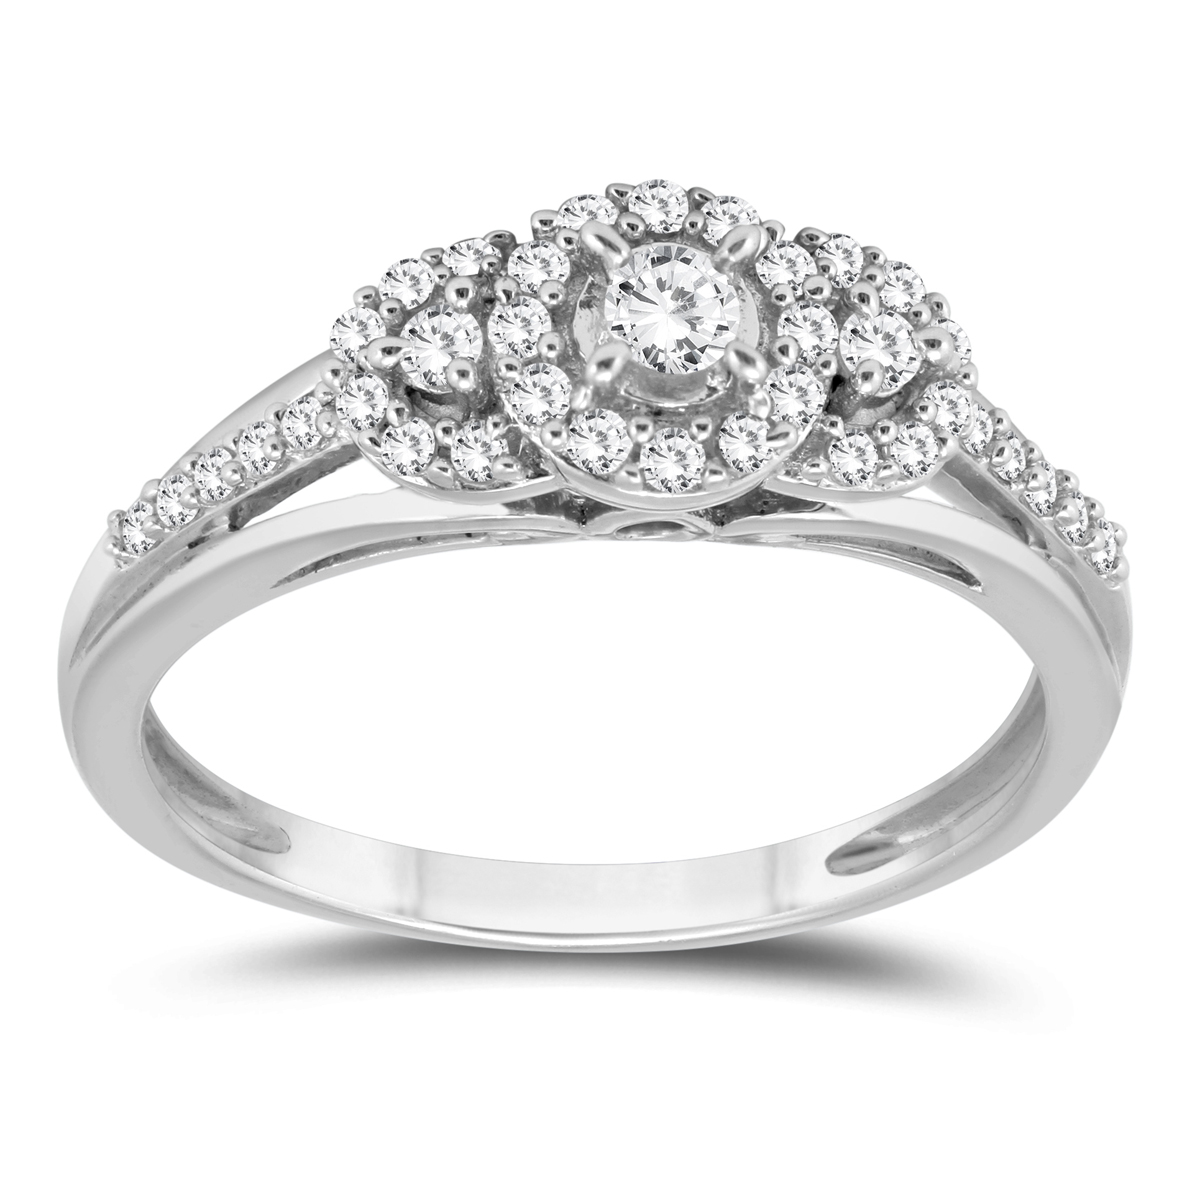 1/3 Carat TW Three Stone Halo Ring